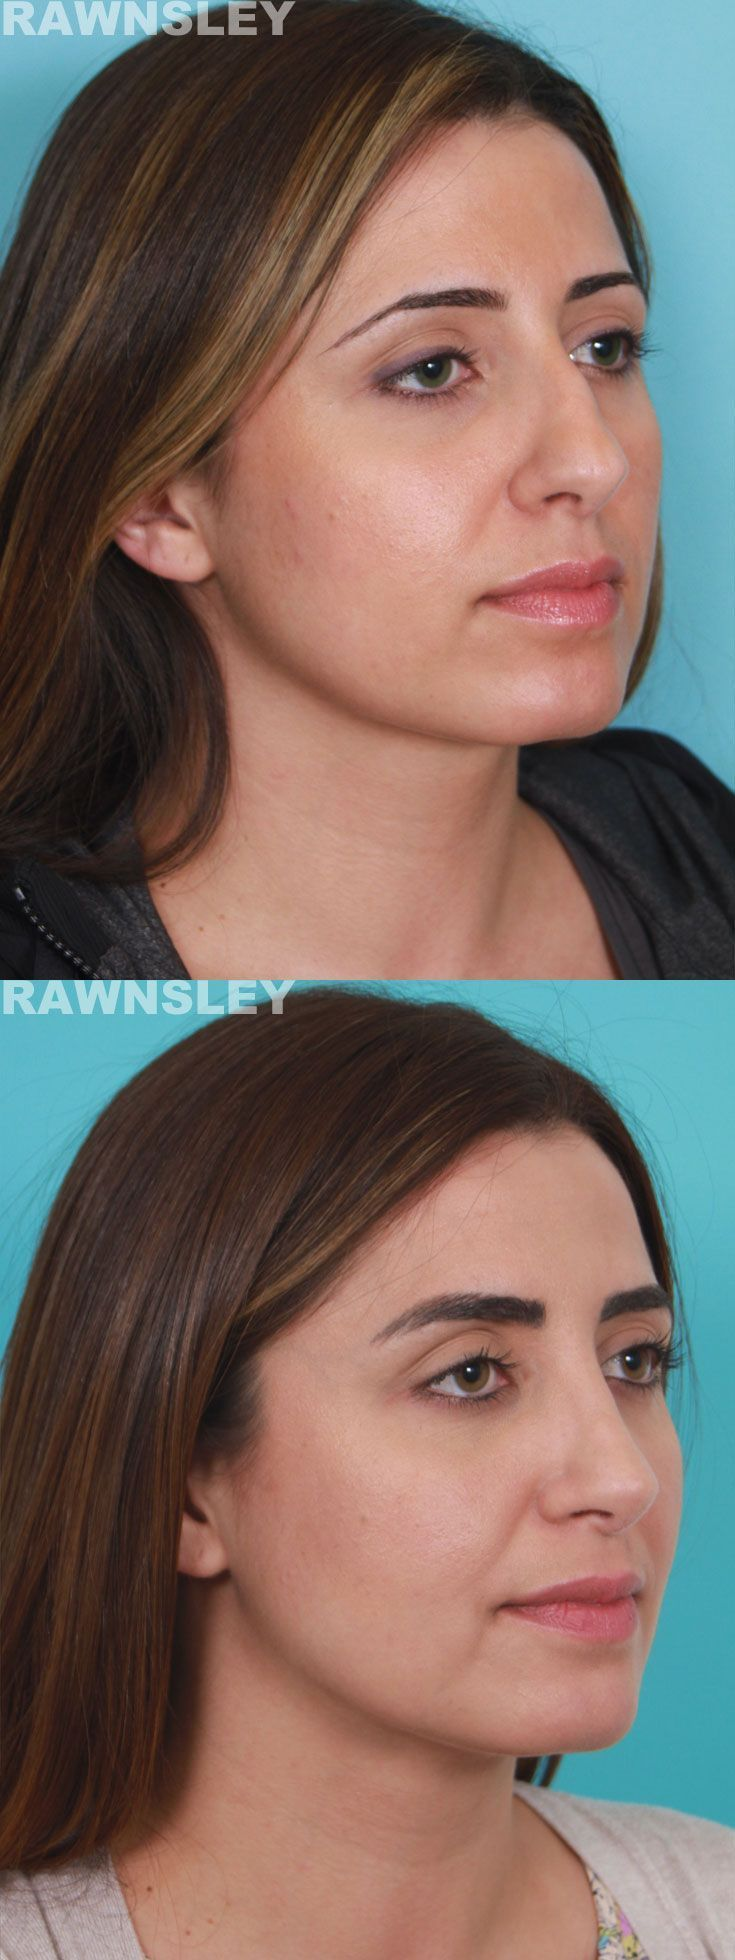 #rhinoplasty #rawnsley #plastic #surgery #before